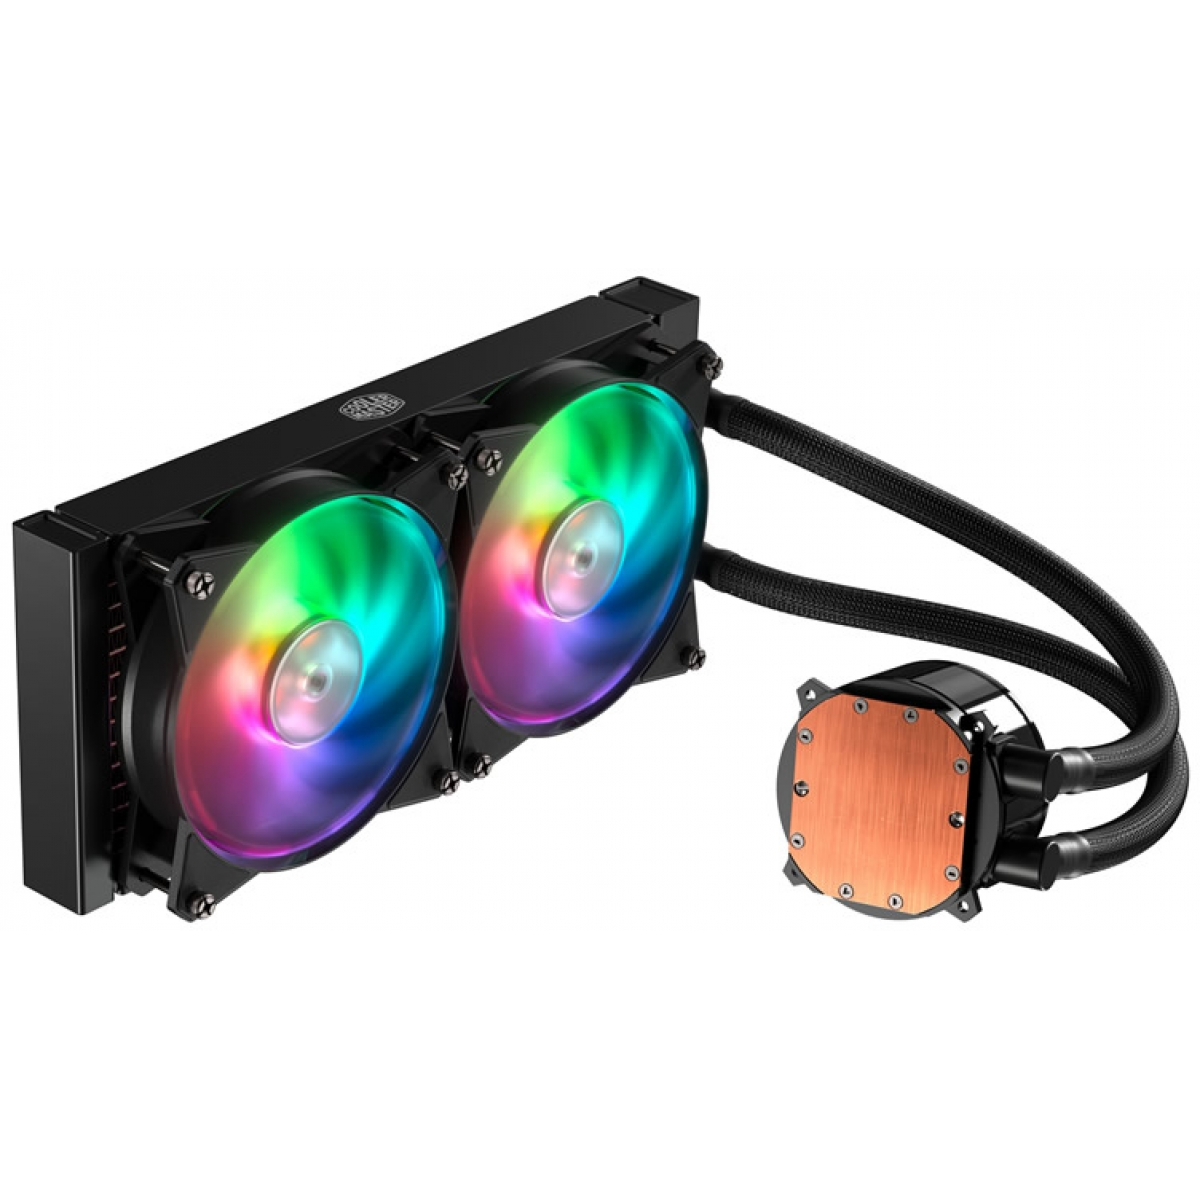 Water Cooler Cooler Master MasterLiquid ML240R, RGB 240mm, Intel-AMD, MLX-D24M-A20PC-R1